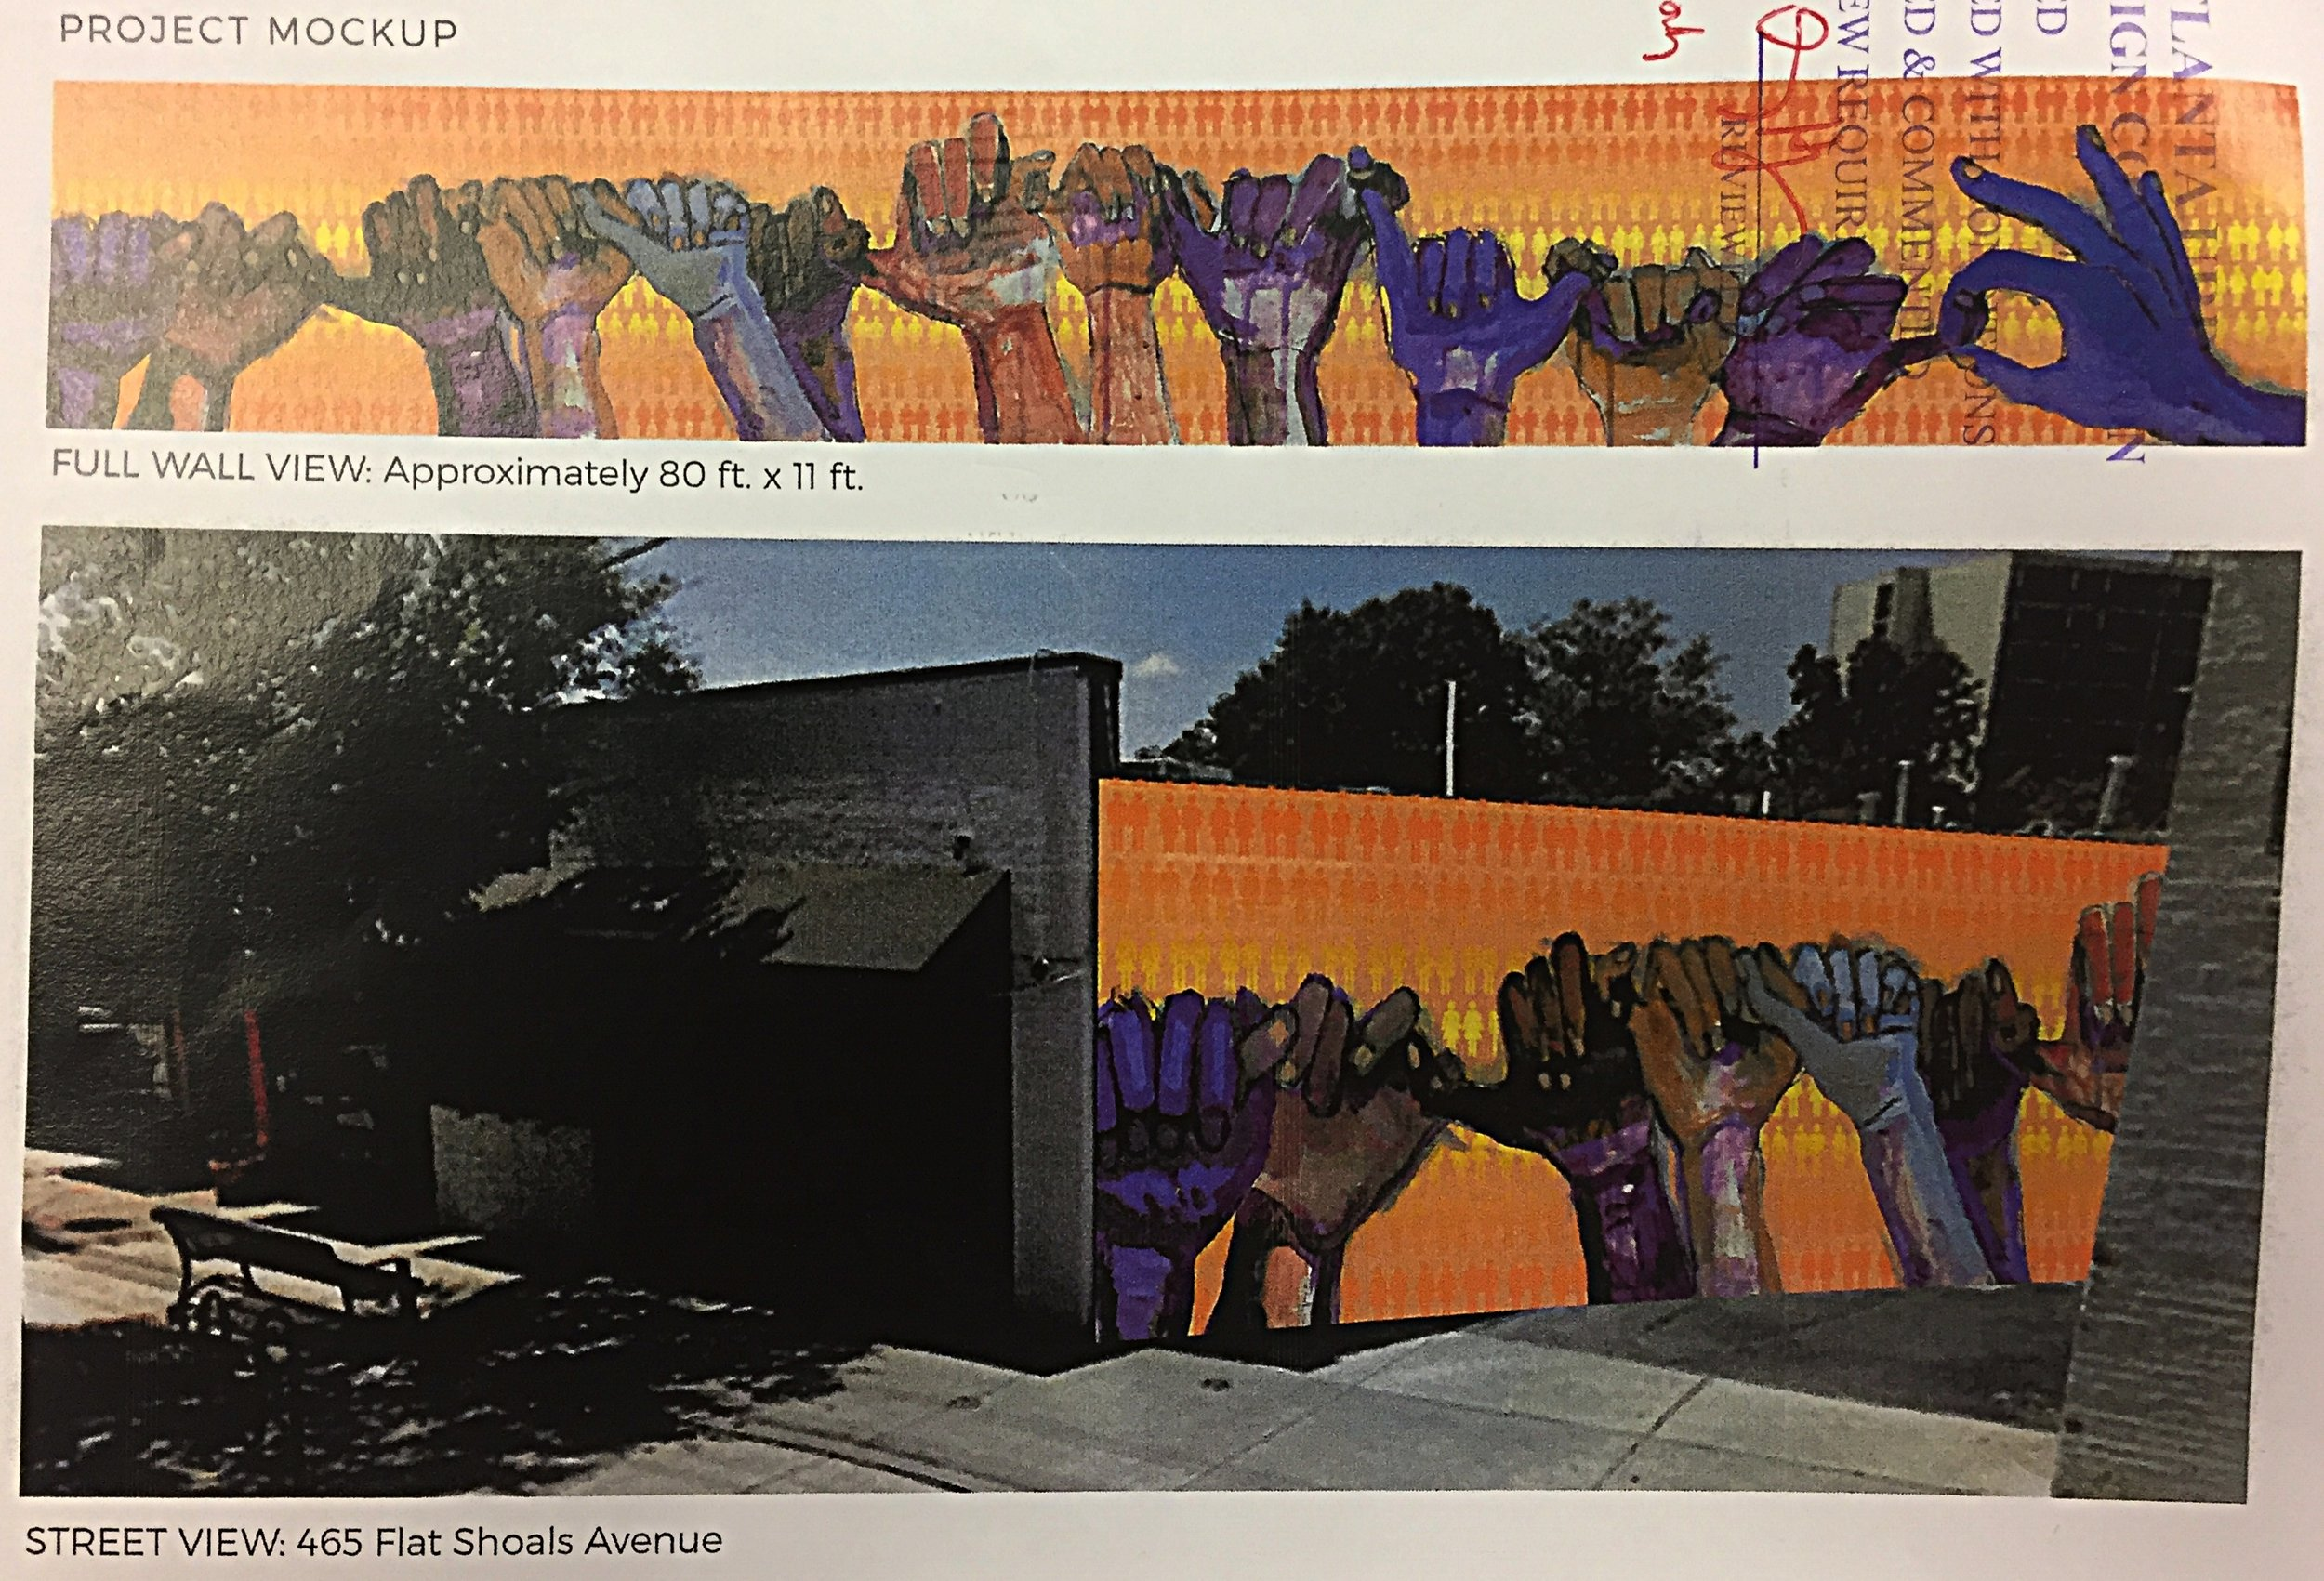 Potential Mural to be added to EAV